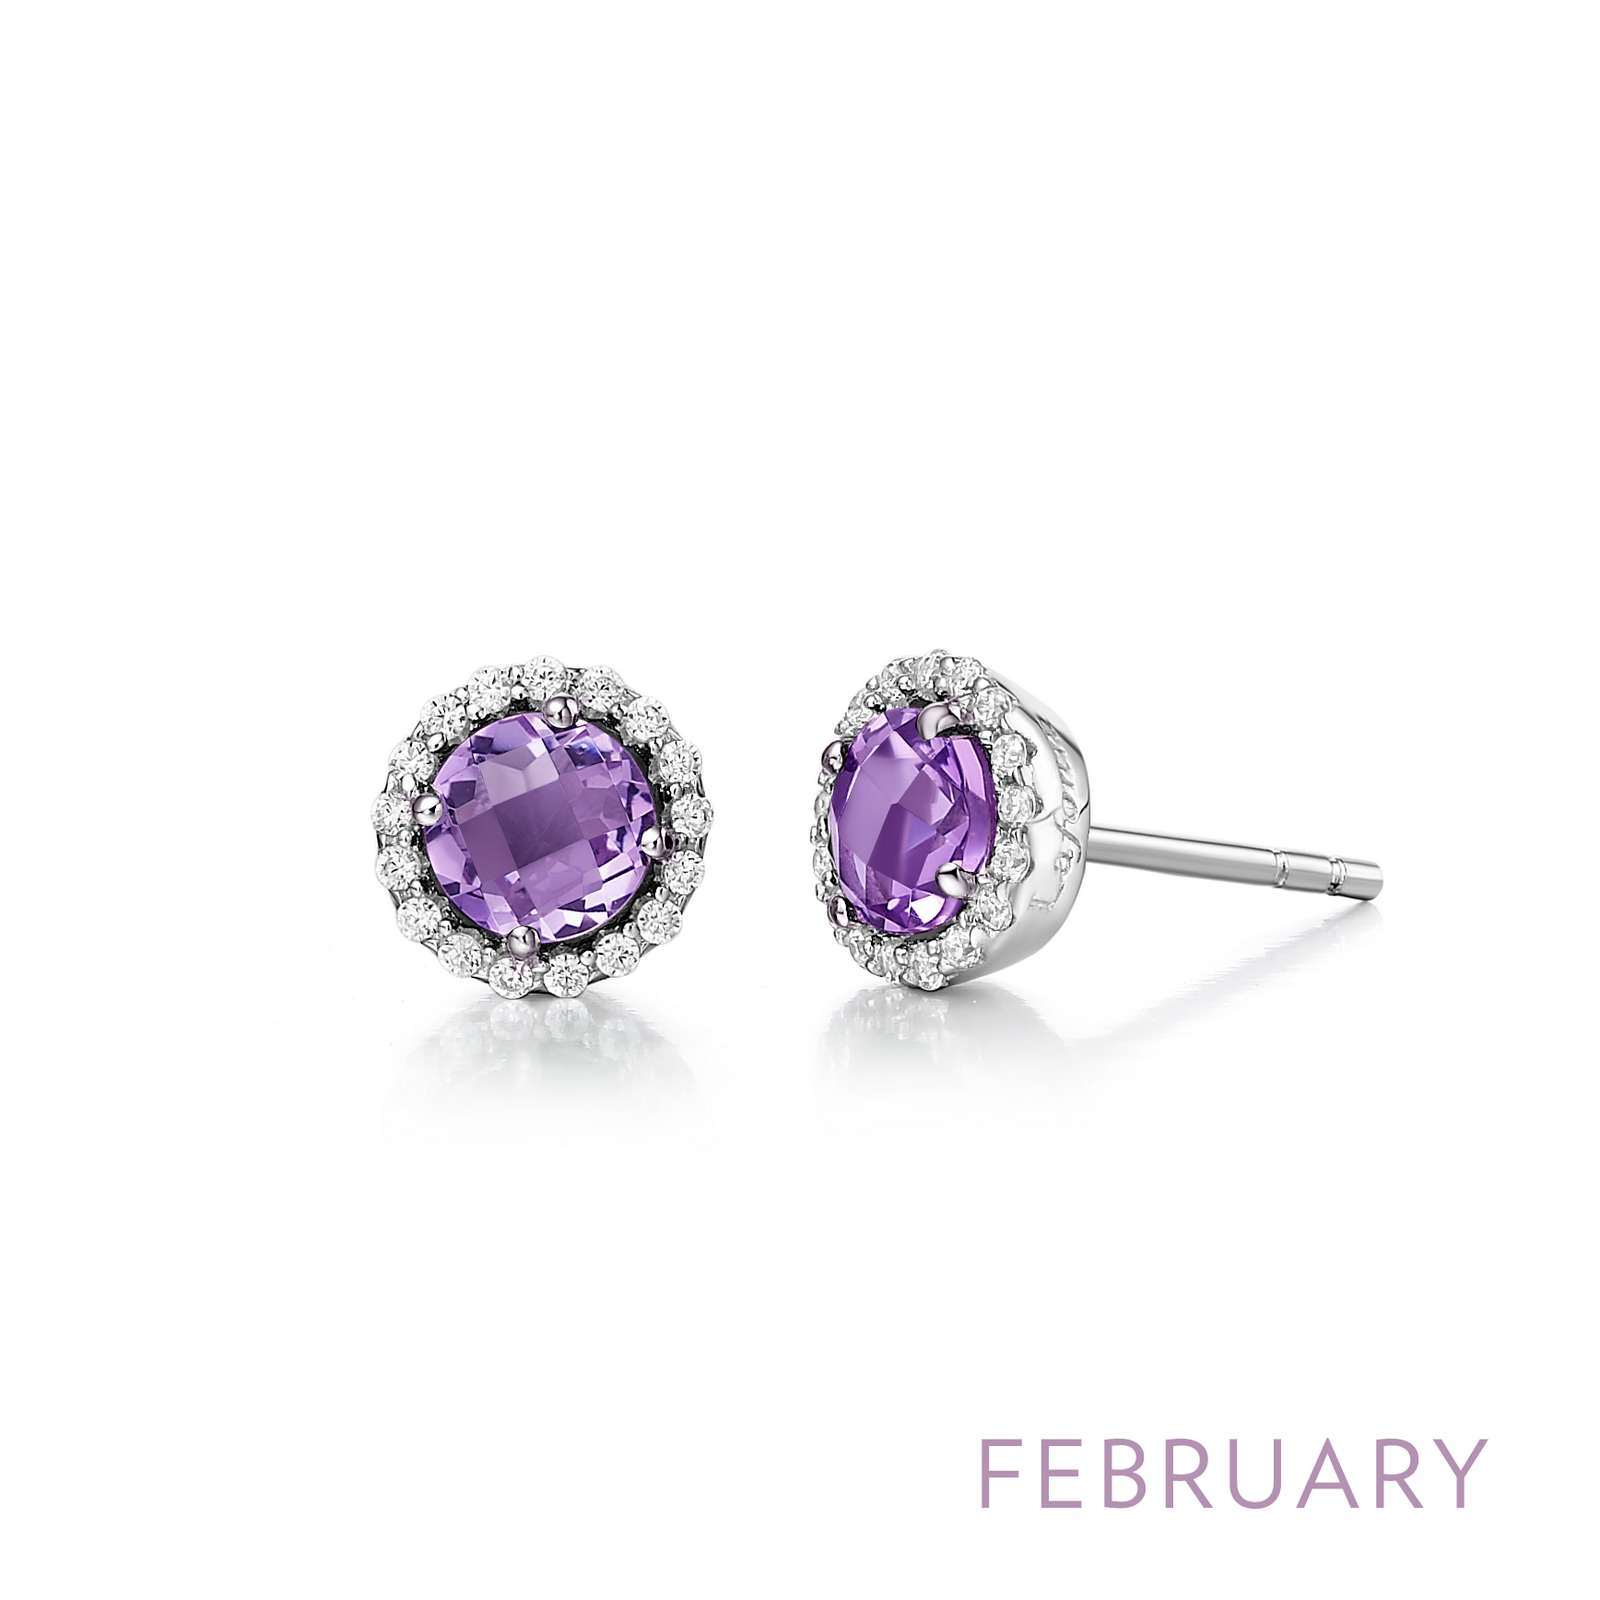 February - Amethyst. Adorn yourself with Lafonn's birthstone jewelry. These halo stud earrings are set with genuine round amethysts surrounded by Lafonn's signature Lassaire simulated diamonds in sterling silver bonded with platinum.